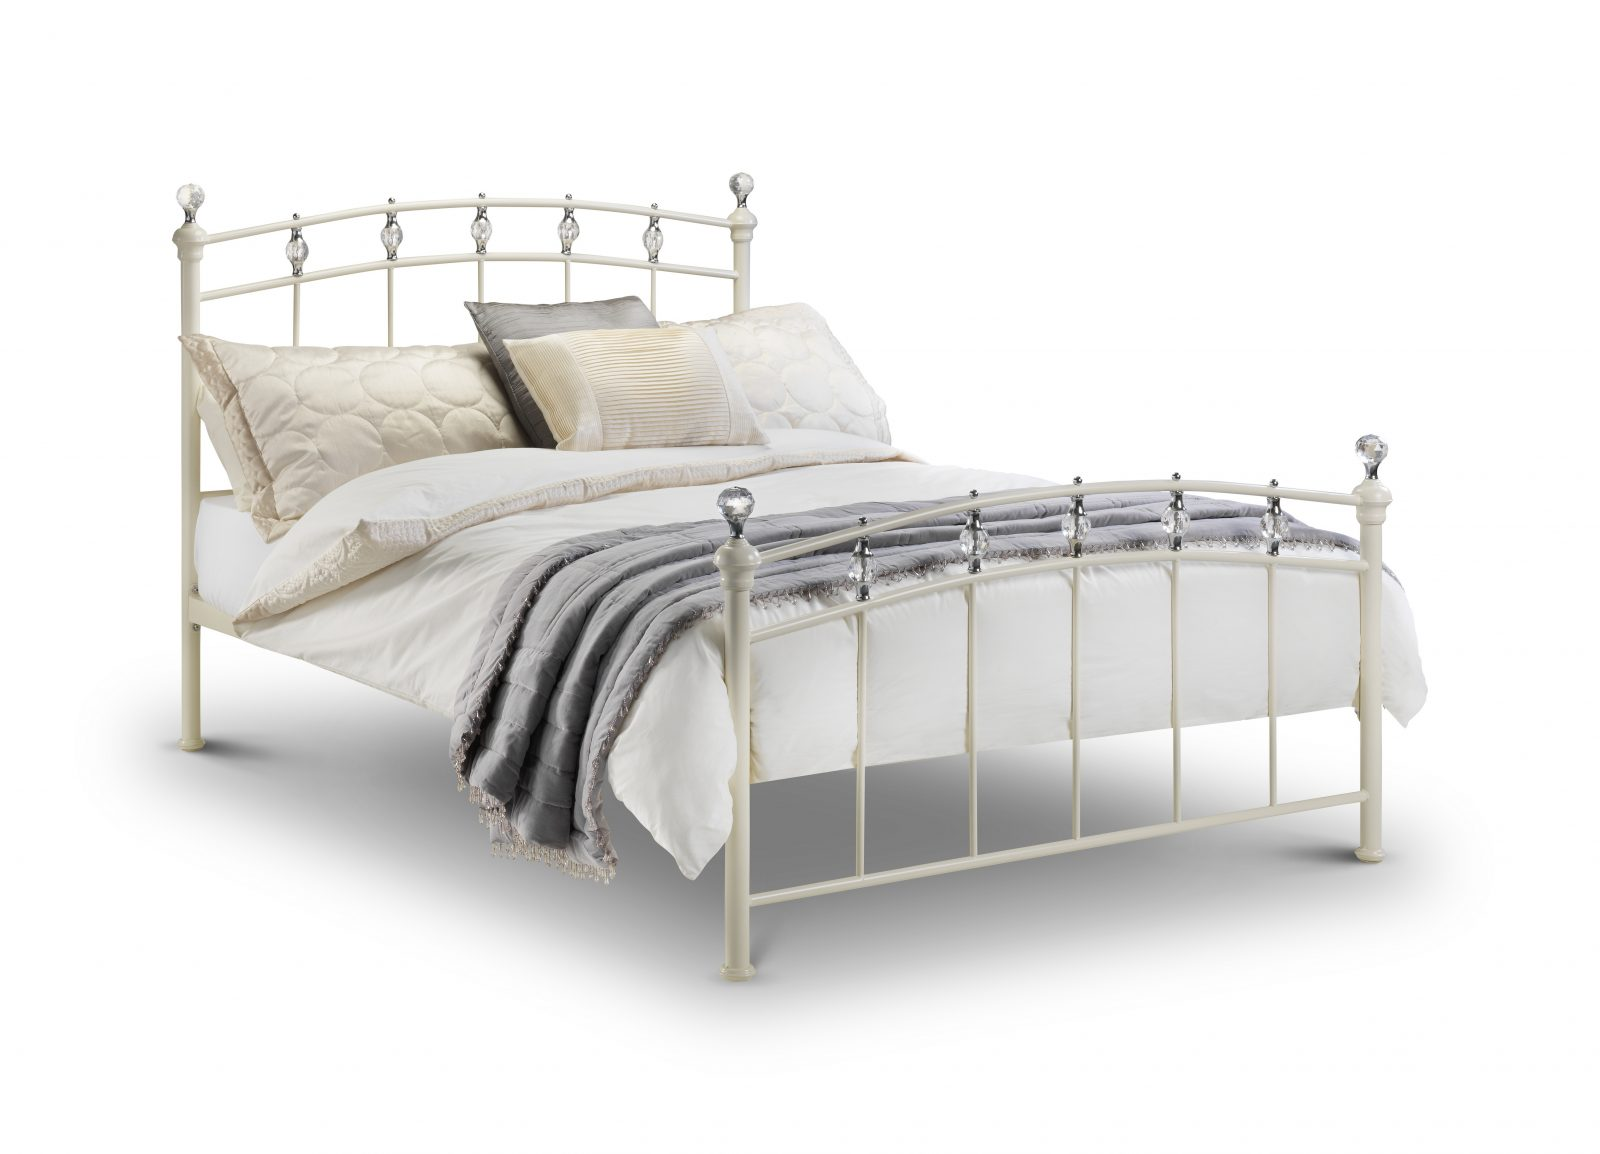 Sophie Double Metal Bed Frame